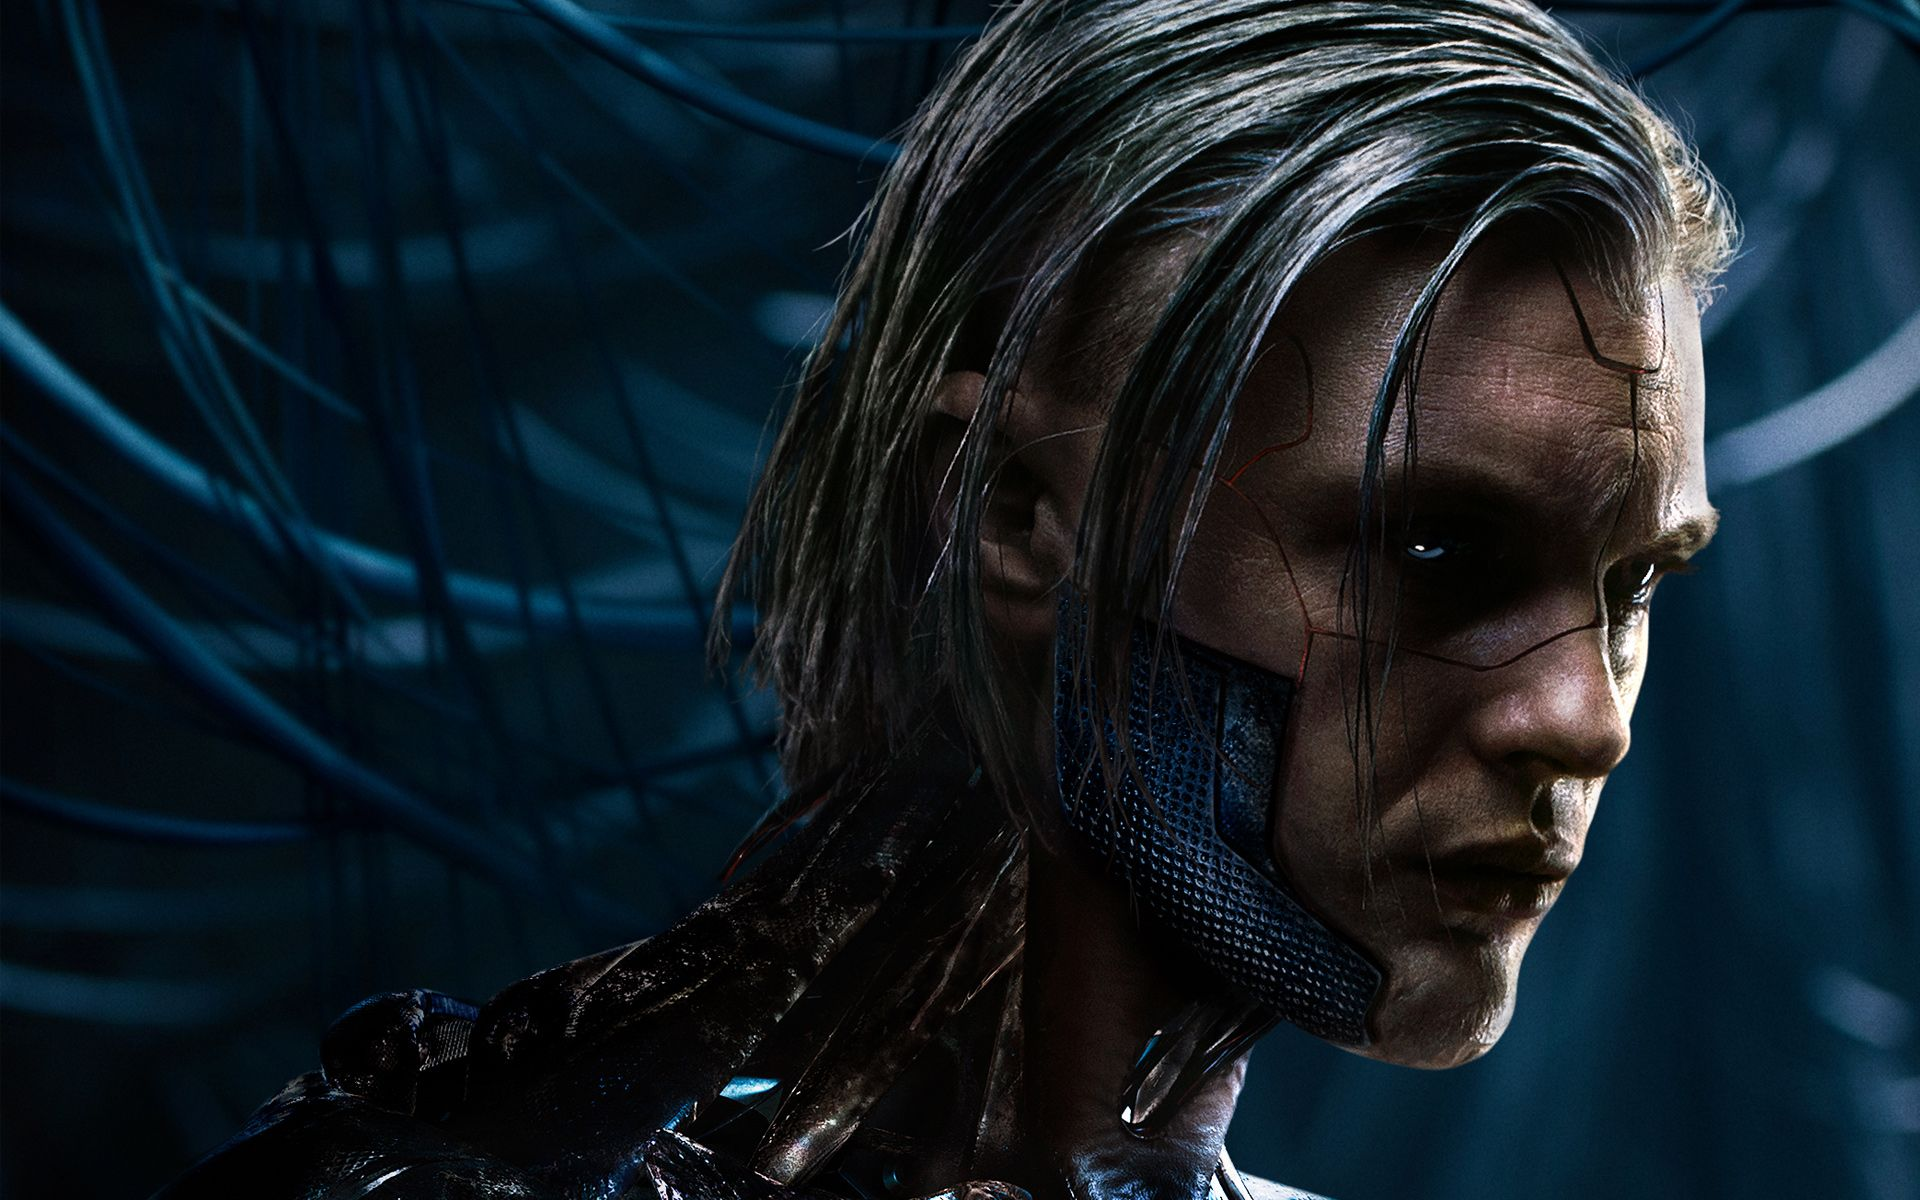 Https Www Reddit Com R Cyberpunk Ghost In The Shell Michael Pitt Ghost